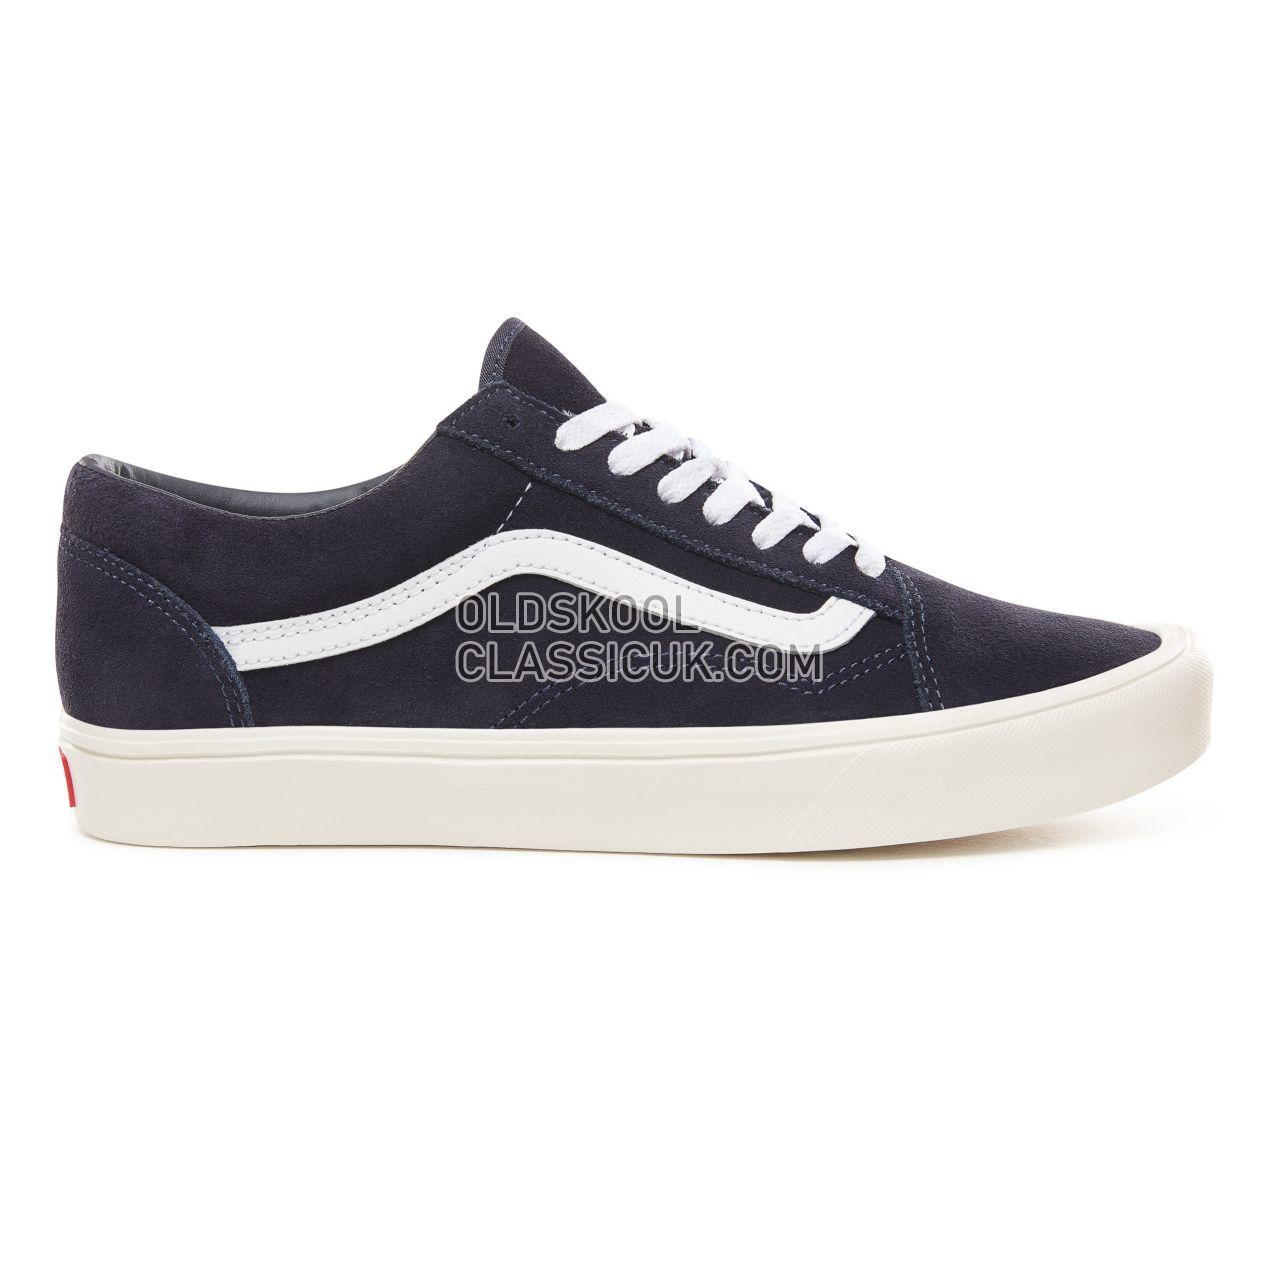 Vans Suede Old Skool Lite Sneakers Mens Womens Unisex (Suede) Sky Captain/Marshmallow VN0A2Z5WULG Shoes